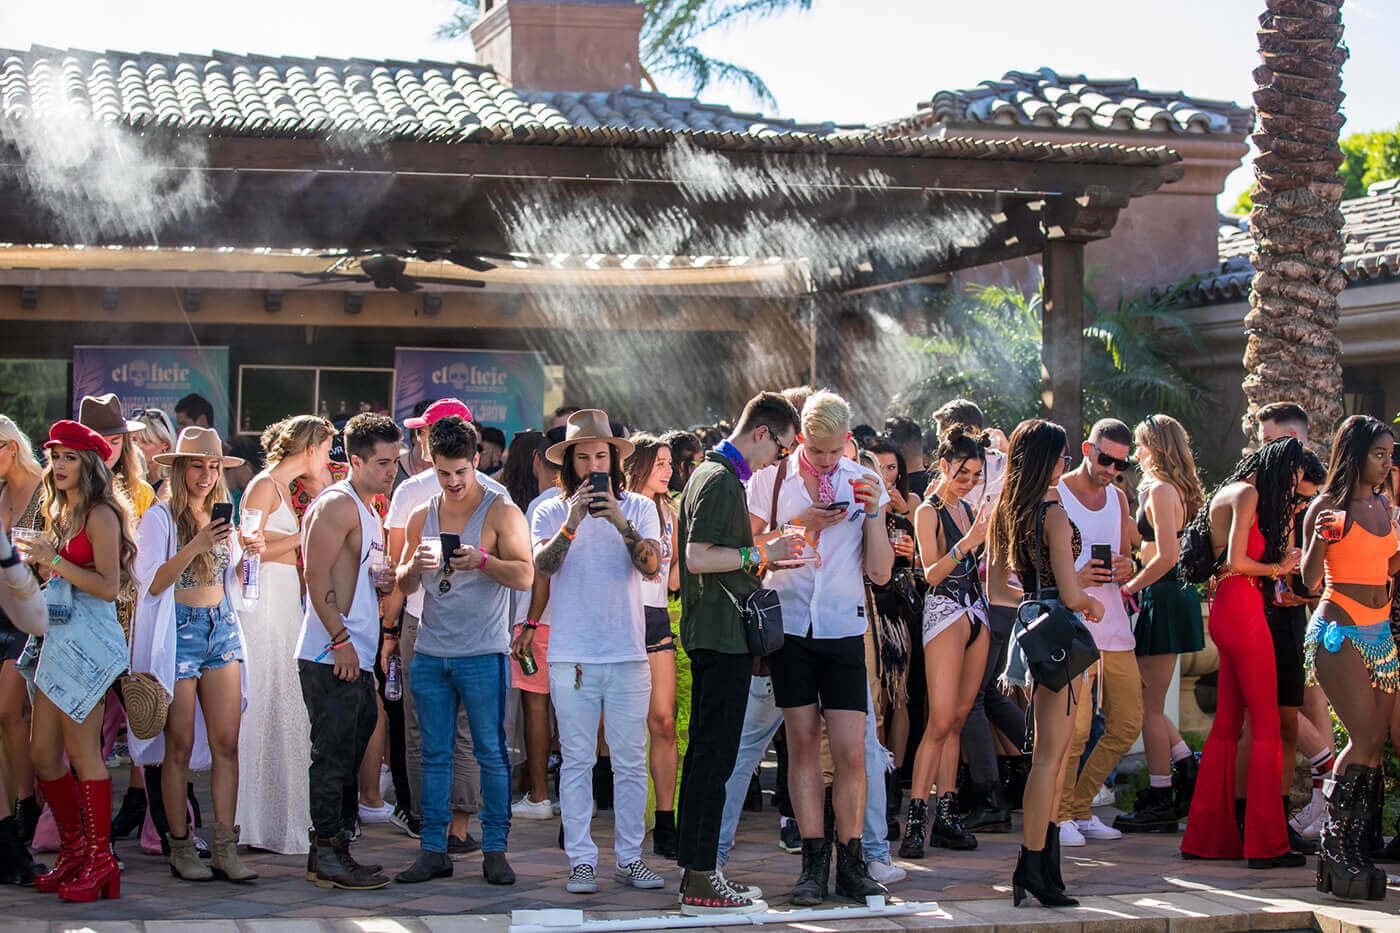 TMA showcased its expertise in experiential marketing by renting out two adjoining private estates and executing an exclusive pool party event for the biggest names in town.